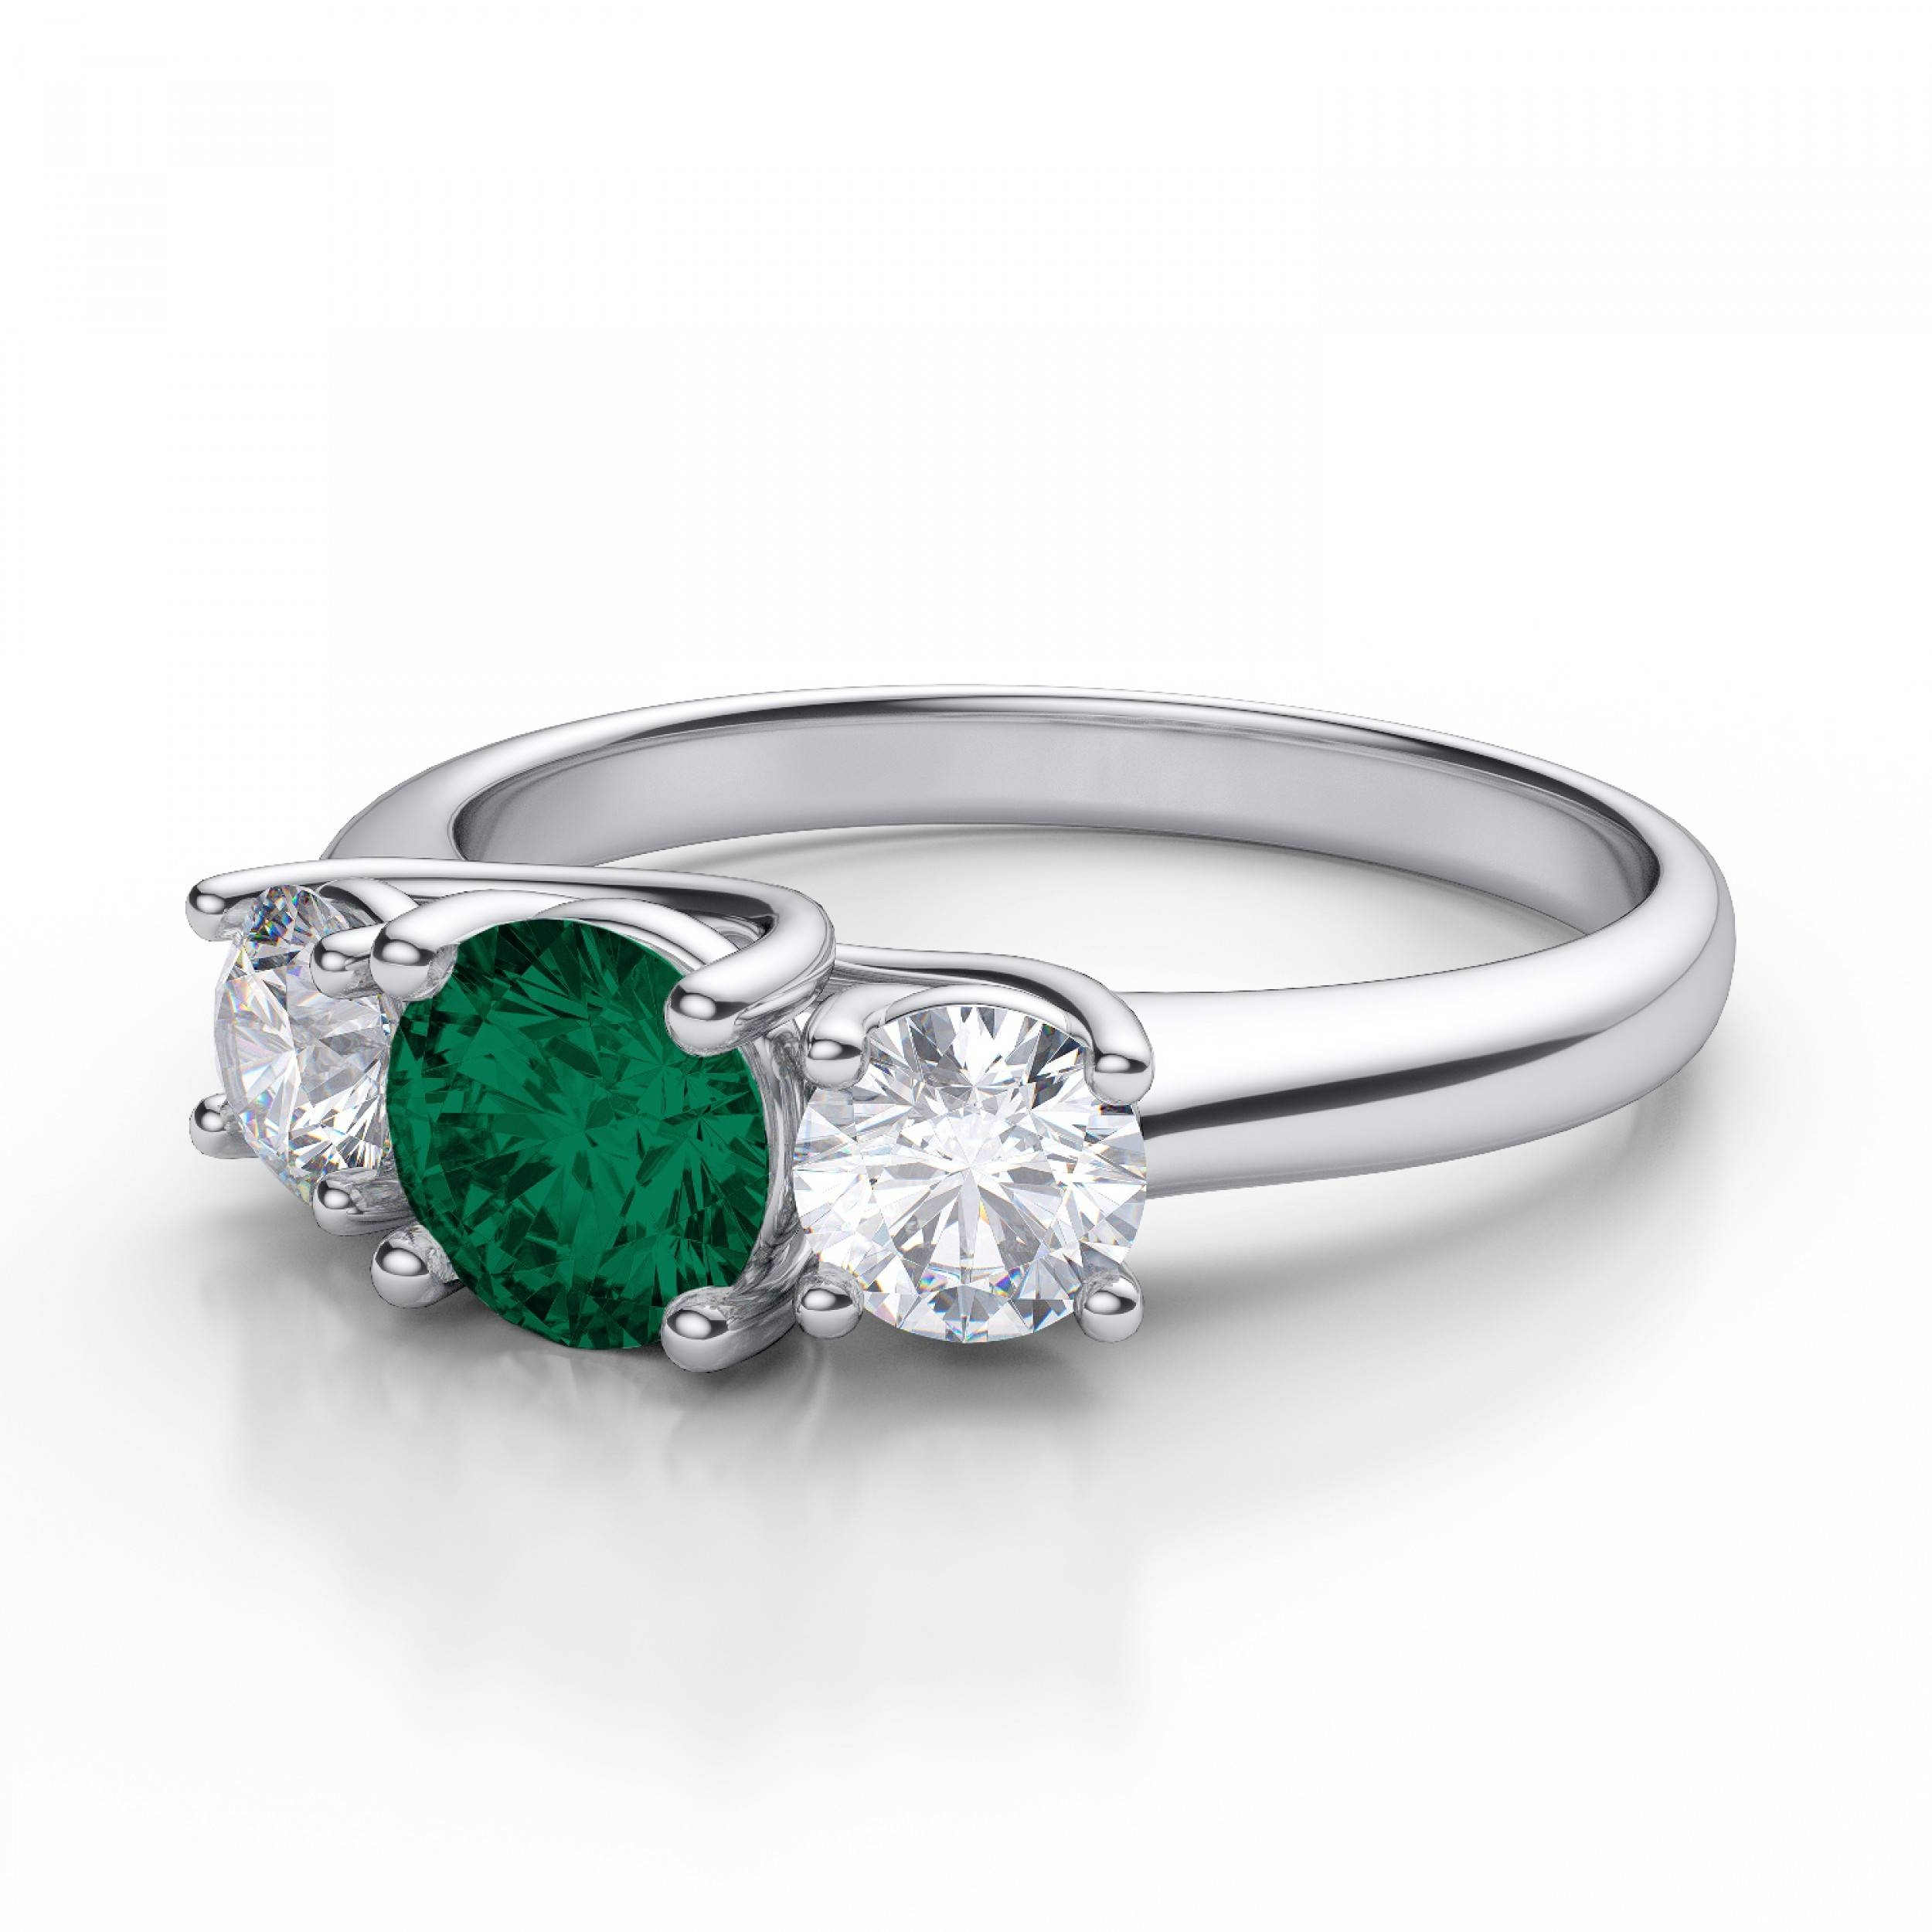 Stone Emerald Gemstone And Diamond Engagement Ring In 14K White Gold With White Gold Emerald Engagement Rings (Gallery 6 of 15)